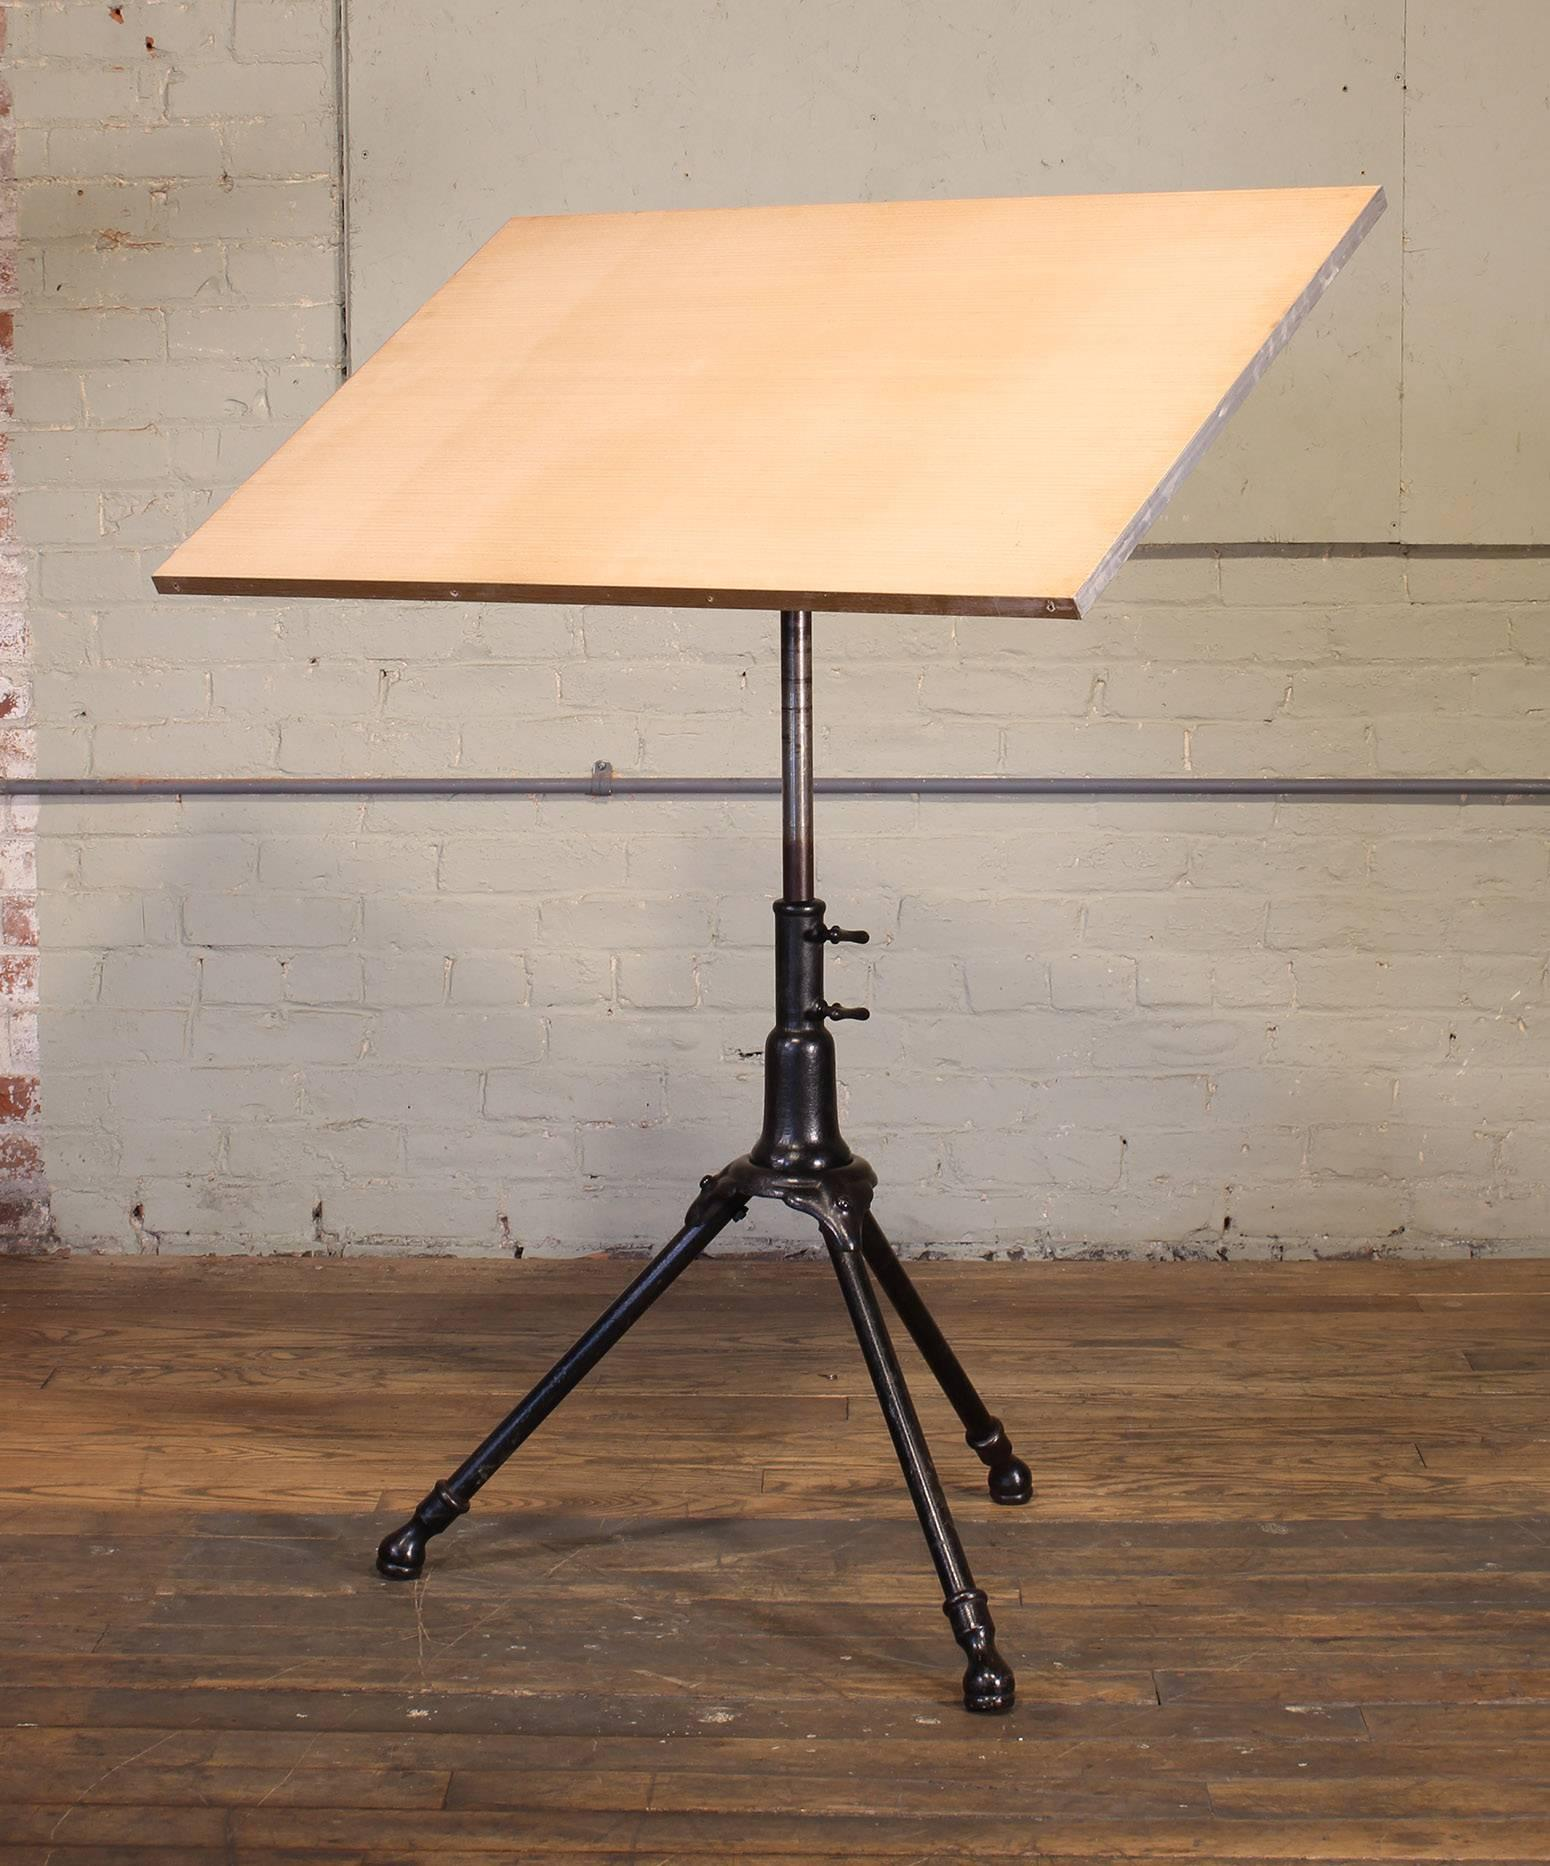 Antique Cast Iron Drafting Table by A. Hoffman Co. 1910 Rochester, NY at  1stdibs - Antique Cast Iron Drafting Table By A. Hoffman Co. 1910 Rochester